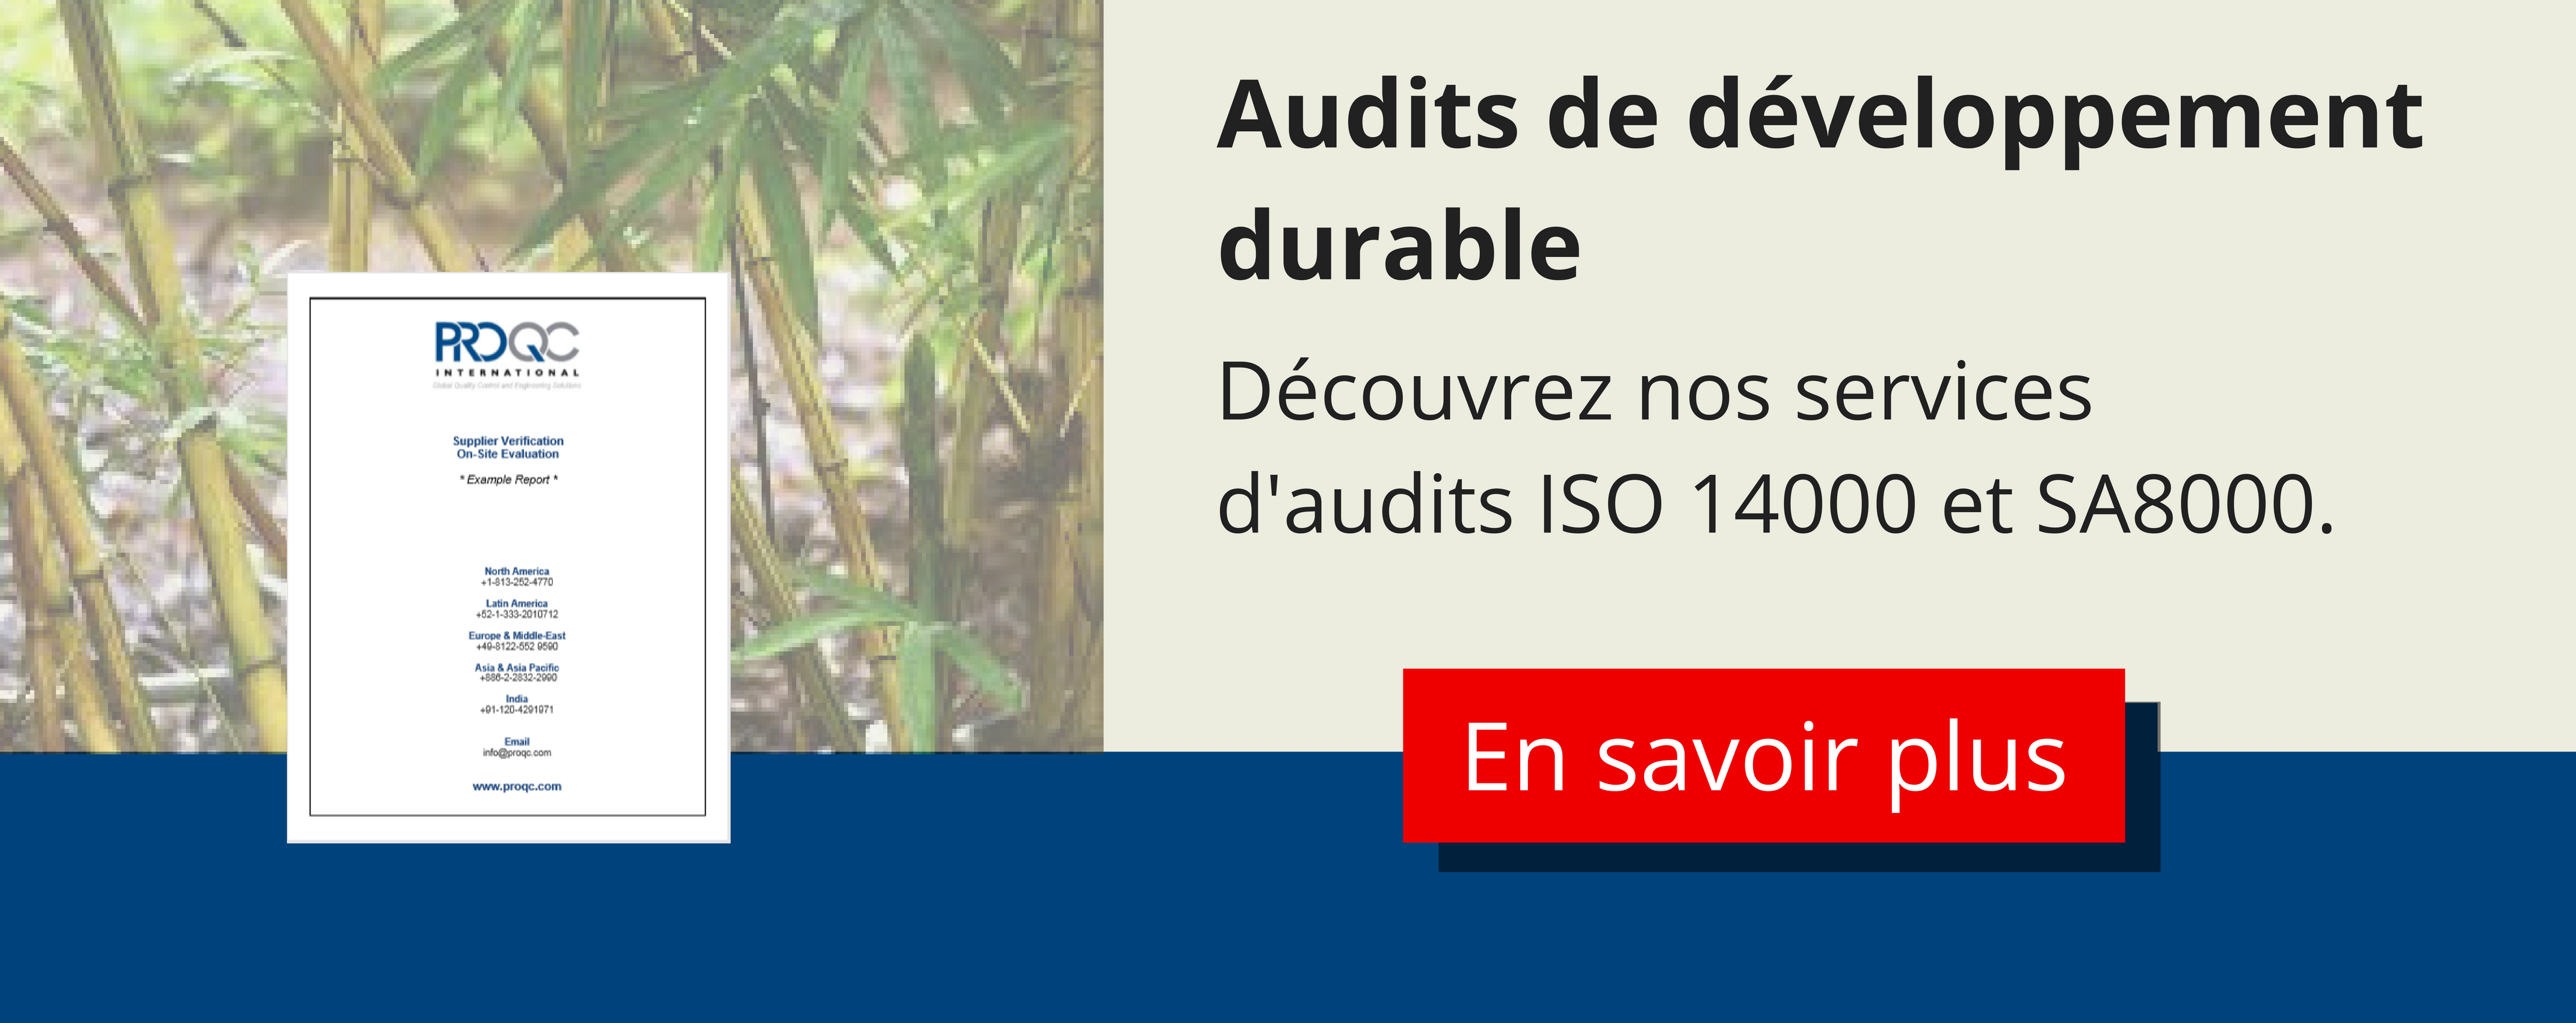 audit-developpement-durable